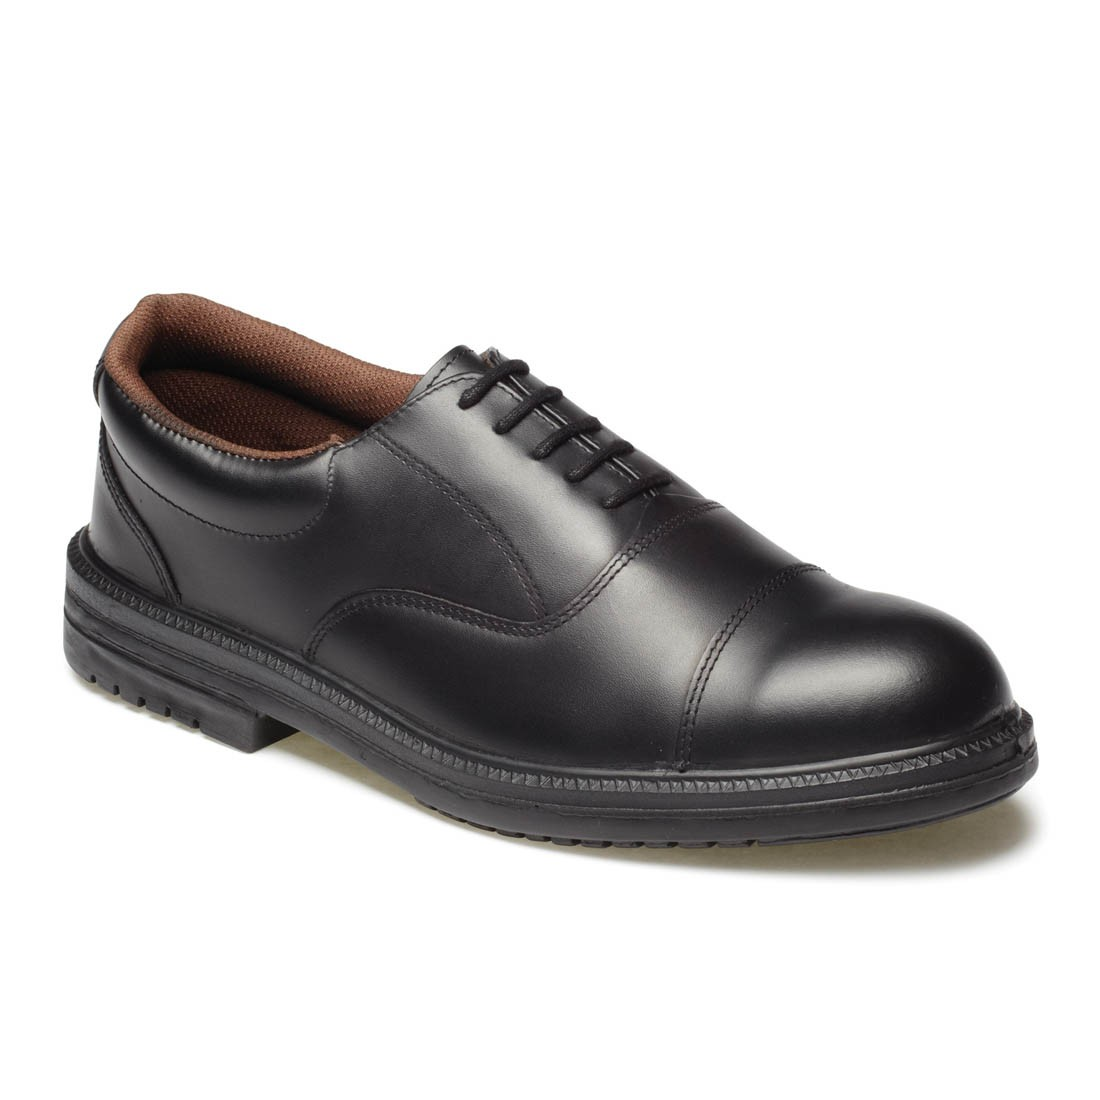 Dickies Oxford Executive Mens Black Leather Smart Formal